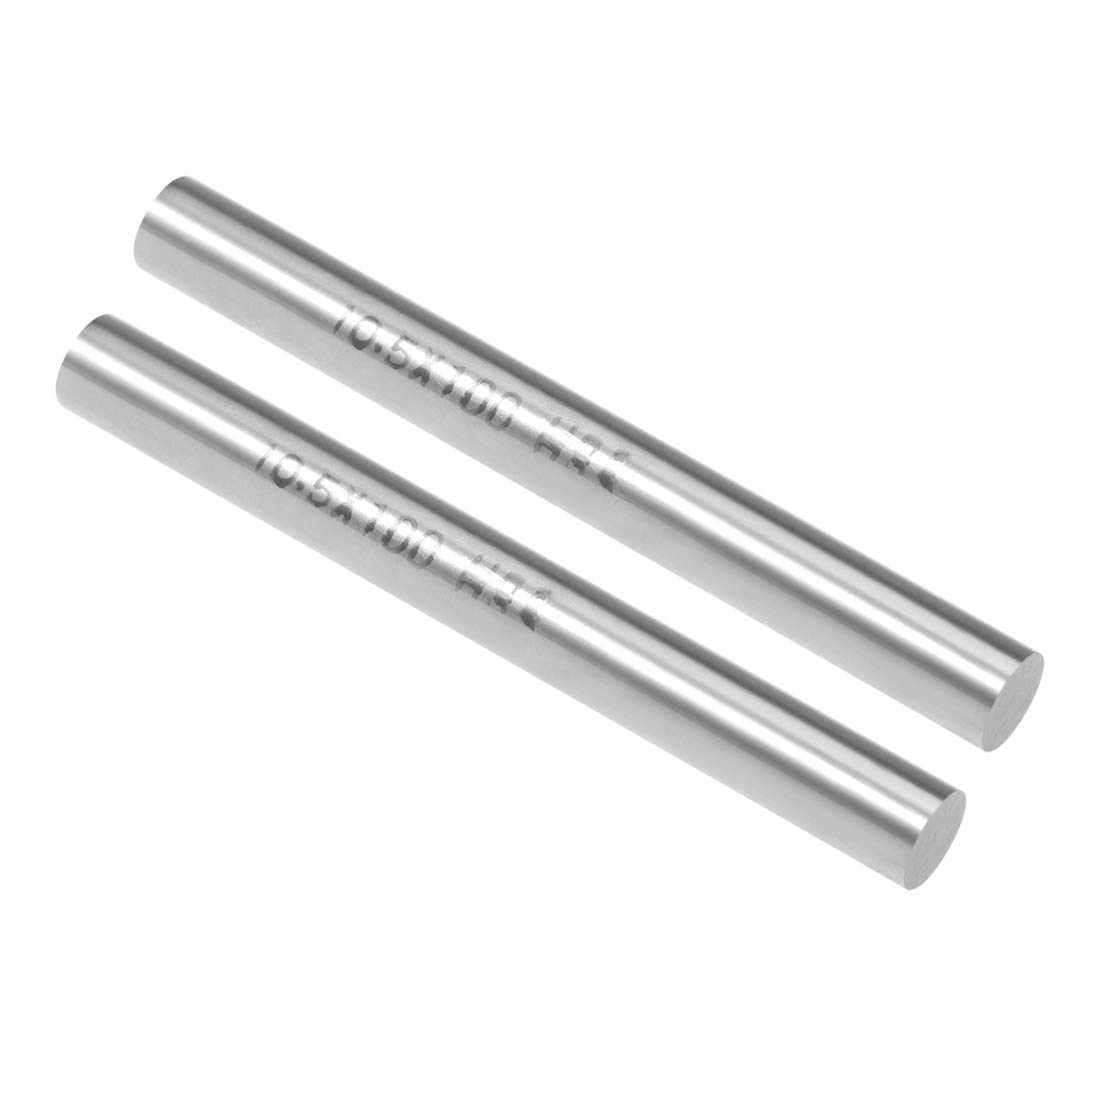 sourcing map HSS Lathe Round Rod Solid Shaft Bar 10mm Dia 100mm Length